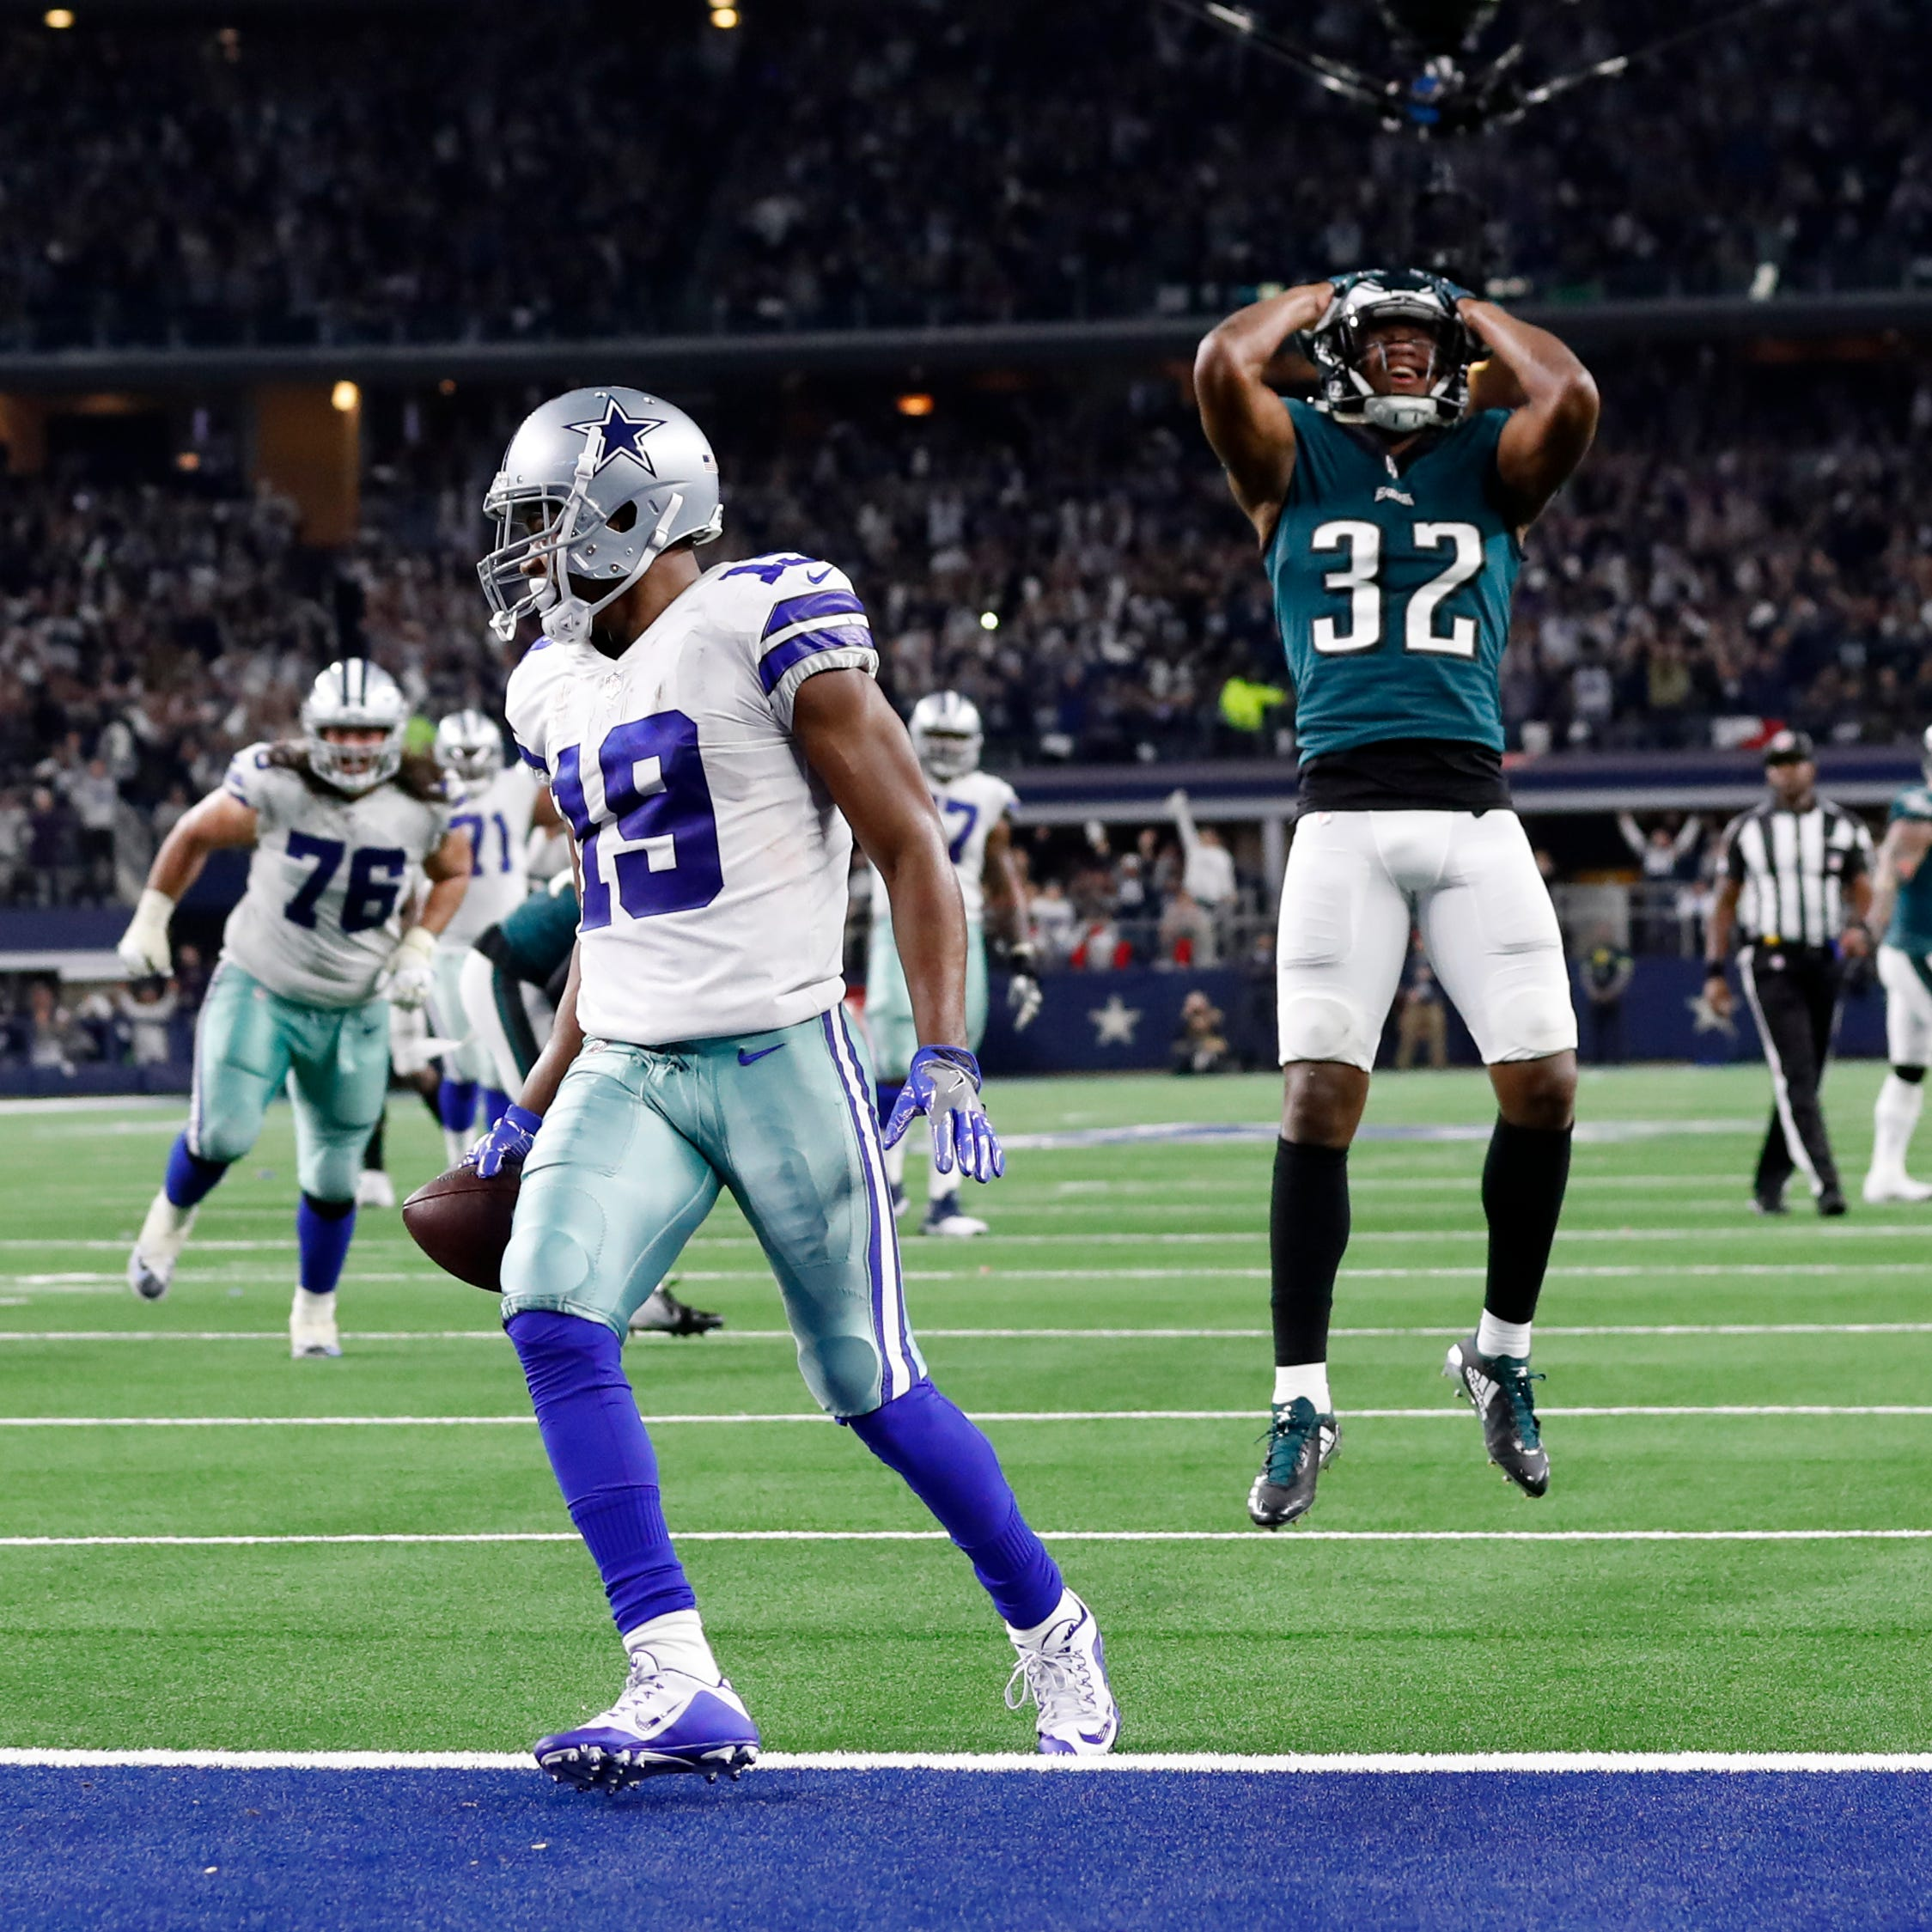 Eagles come to life late, but lose to Cowboys in OT as playoff chances fade